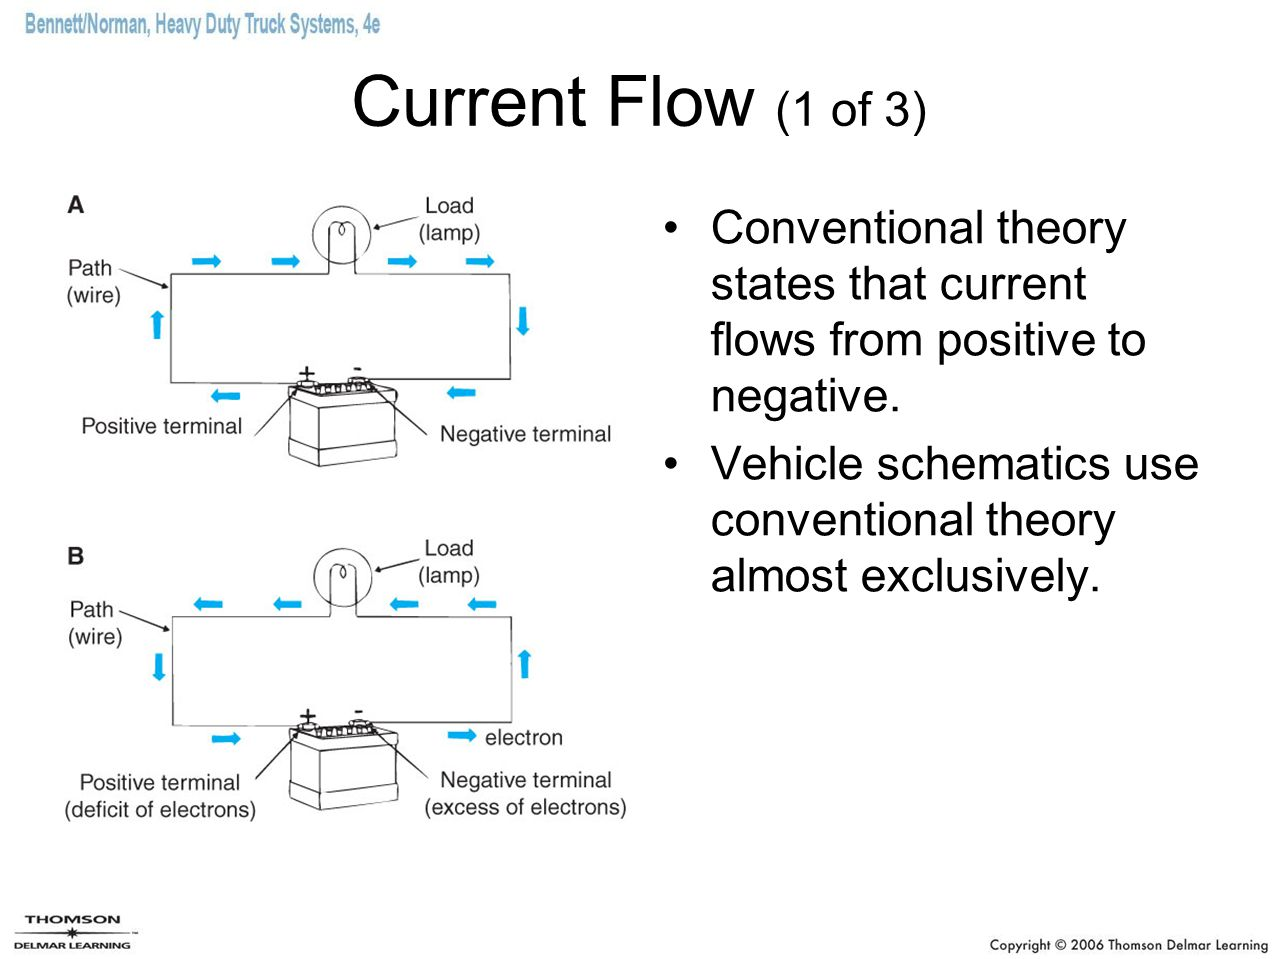 Current Flow (1 of 3) Conventional theory states that current flows from positive to negative.